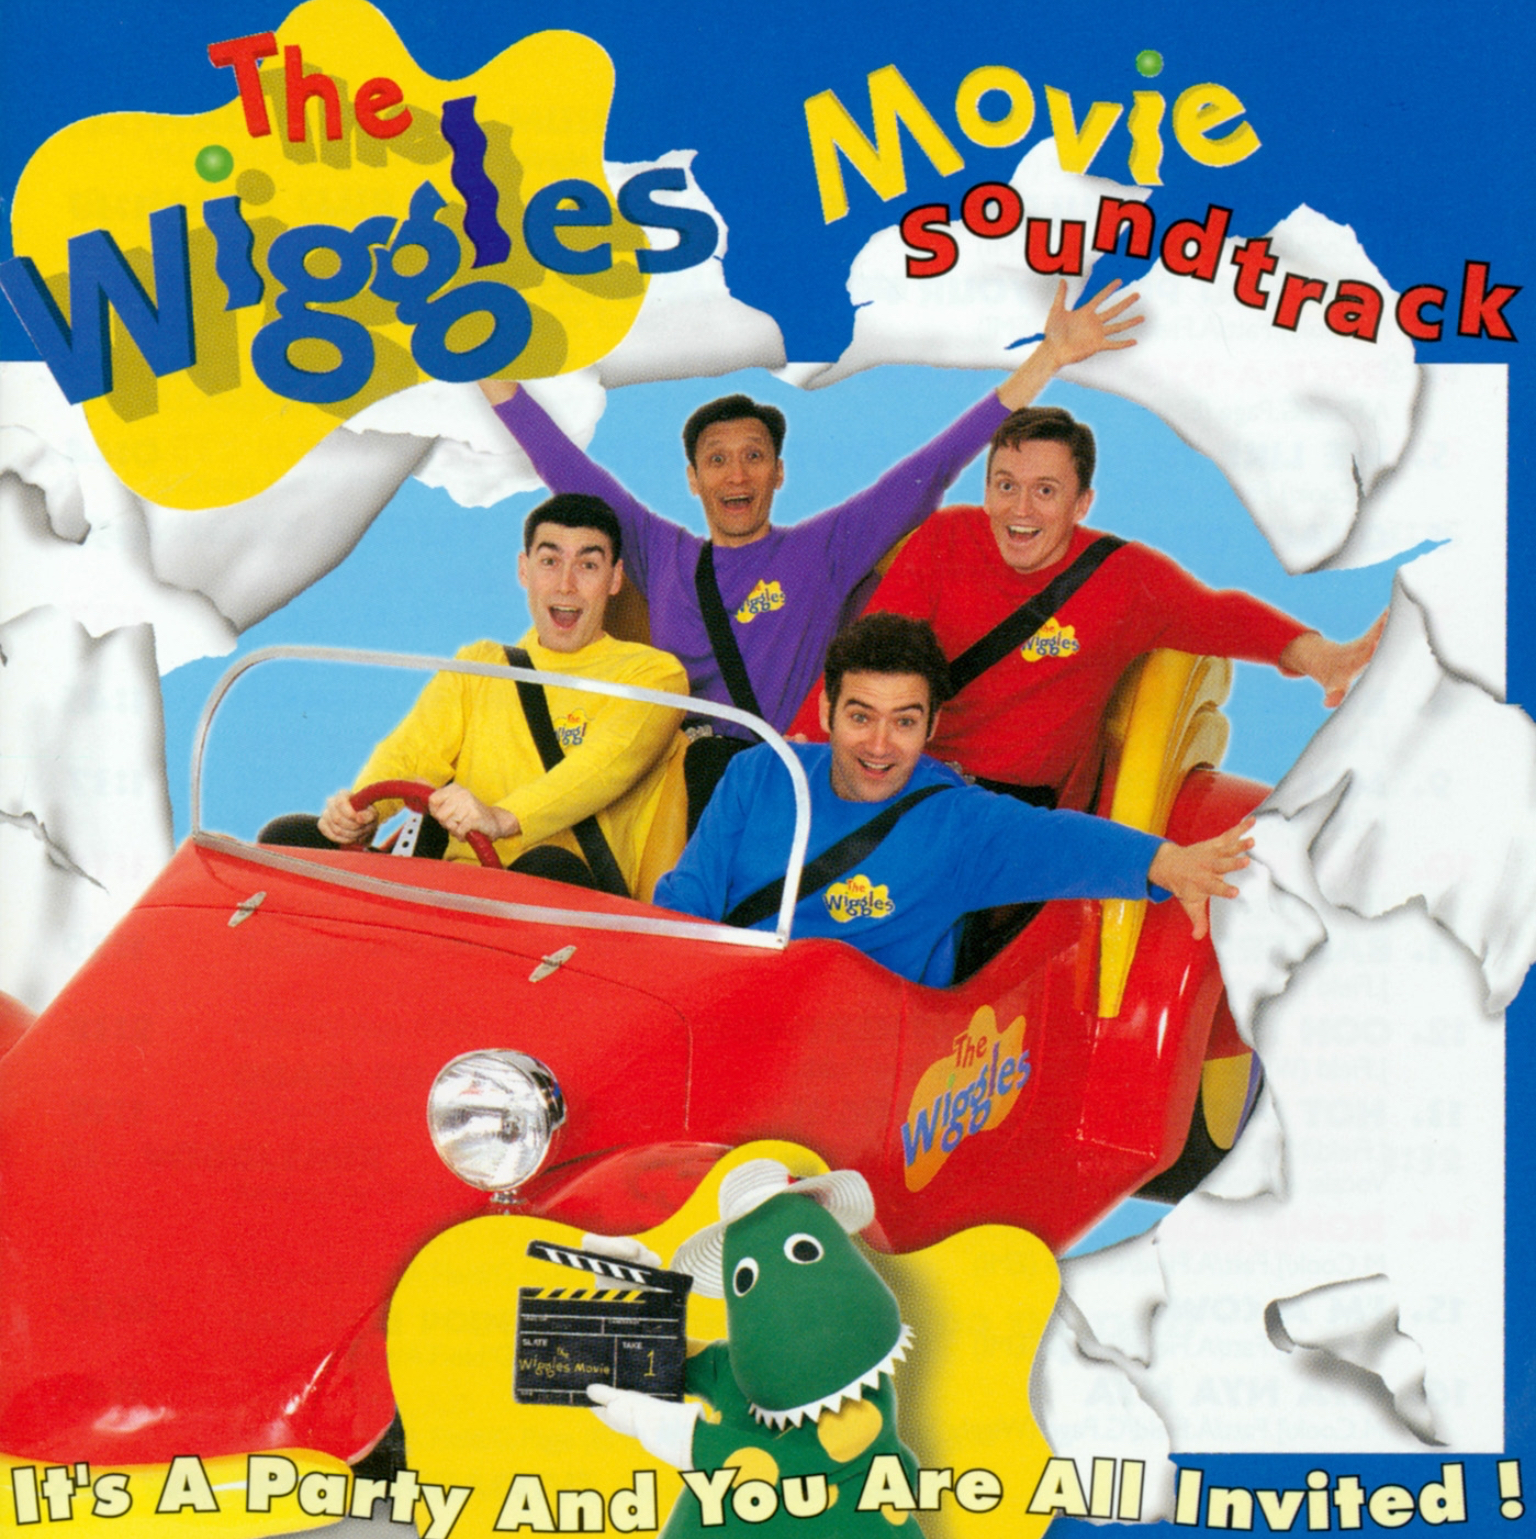 The Wiggles Movie Soundtrack/Gallery